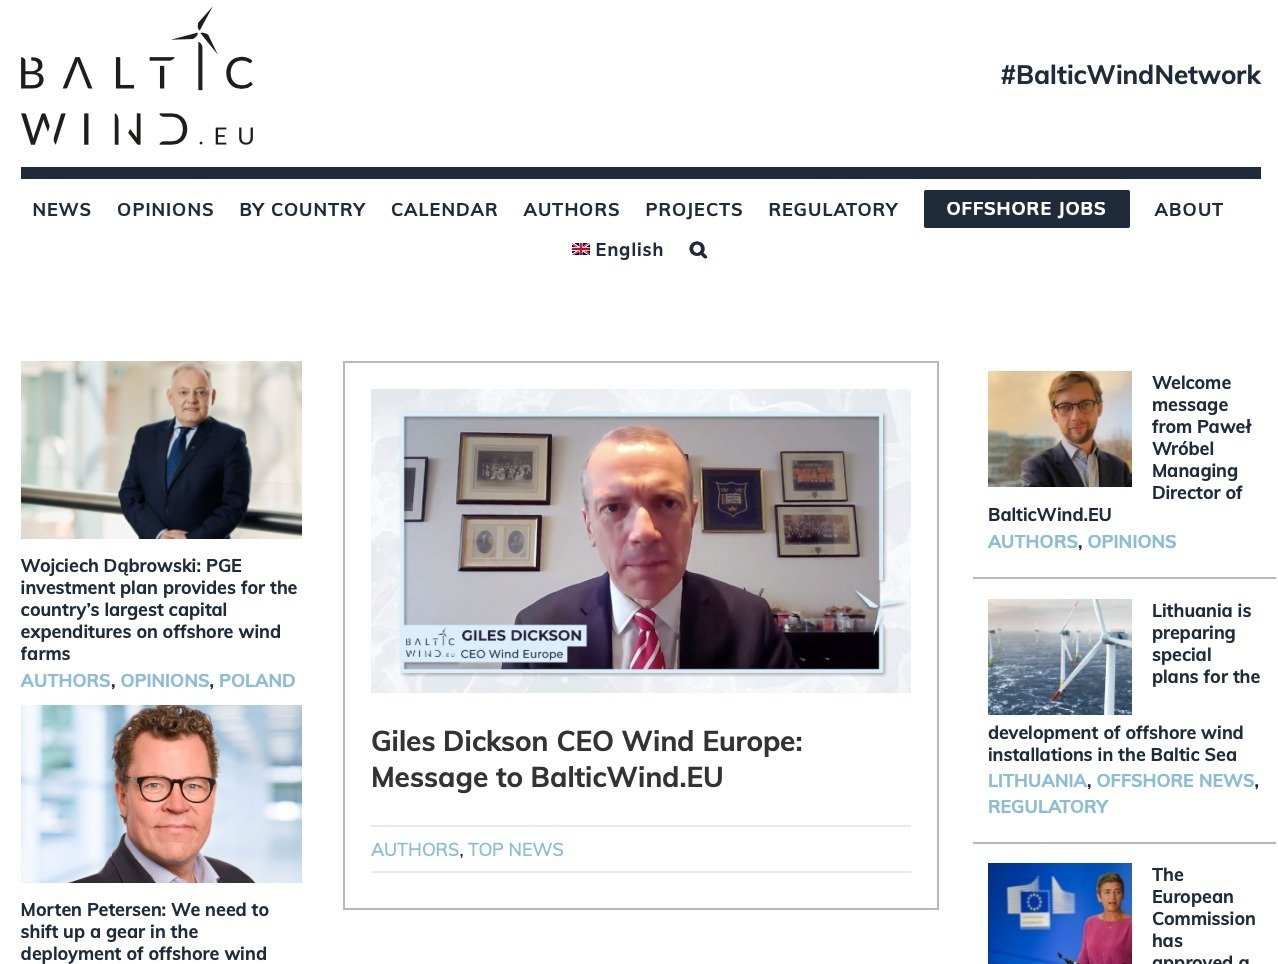 Today the first pan-European news and insights portal dedicated to wind energy in the Baltic Sea is launched